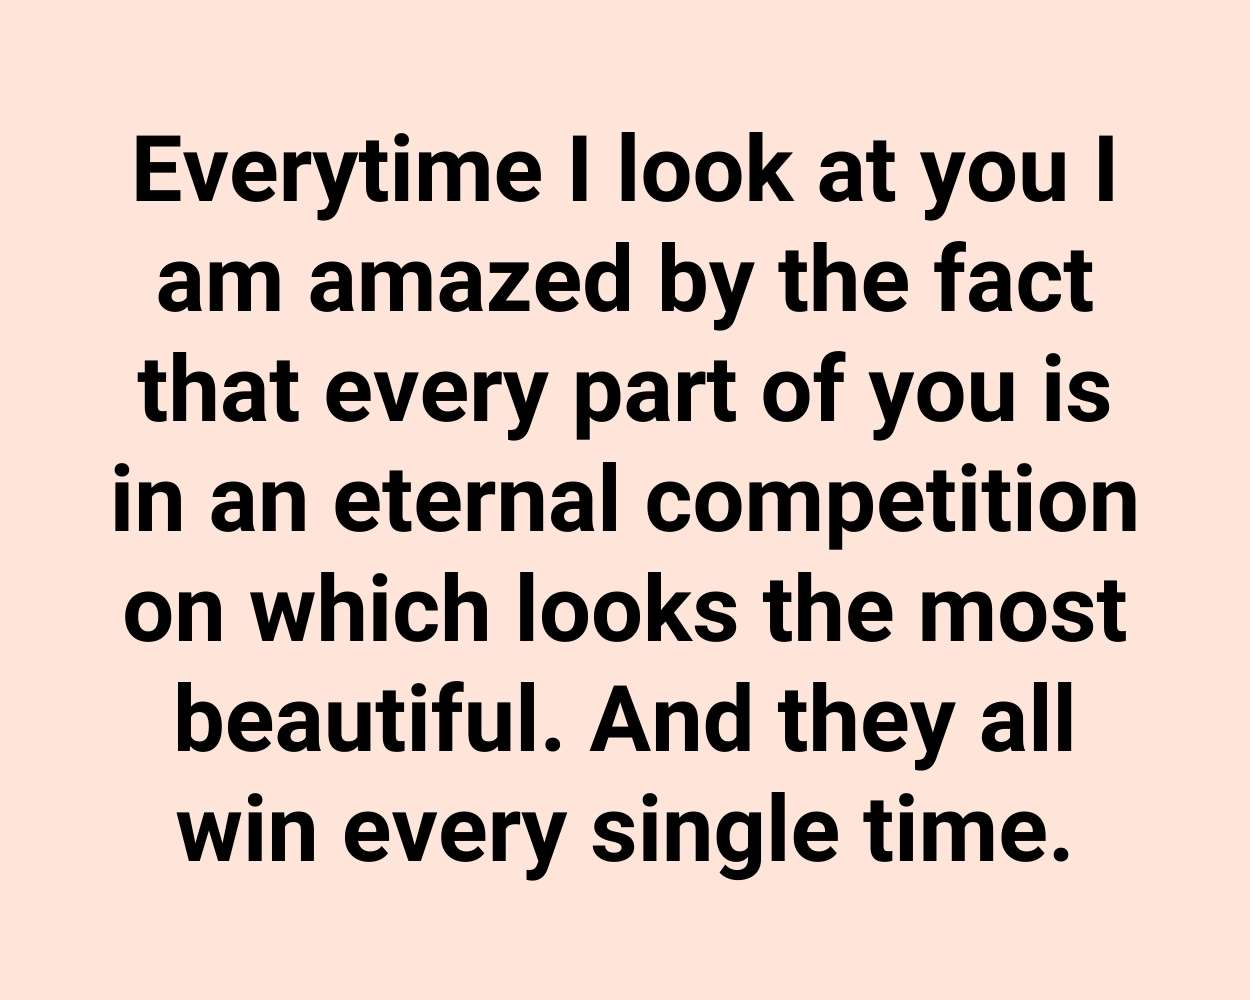 Everytime I look at you I am amazed by the fact that every part of you is in an eternal competition on which looks the most beautiful. And they all win every single time.